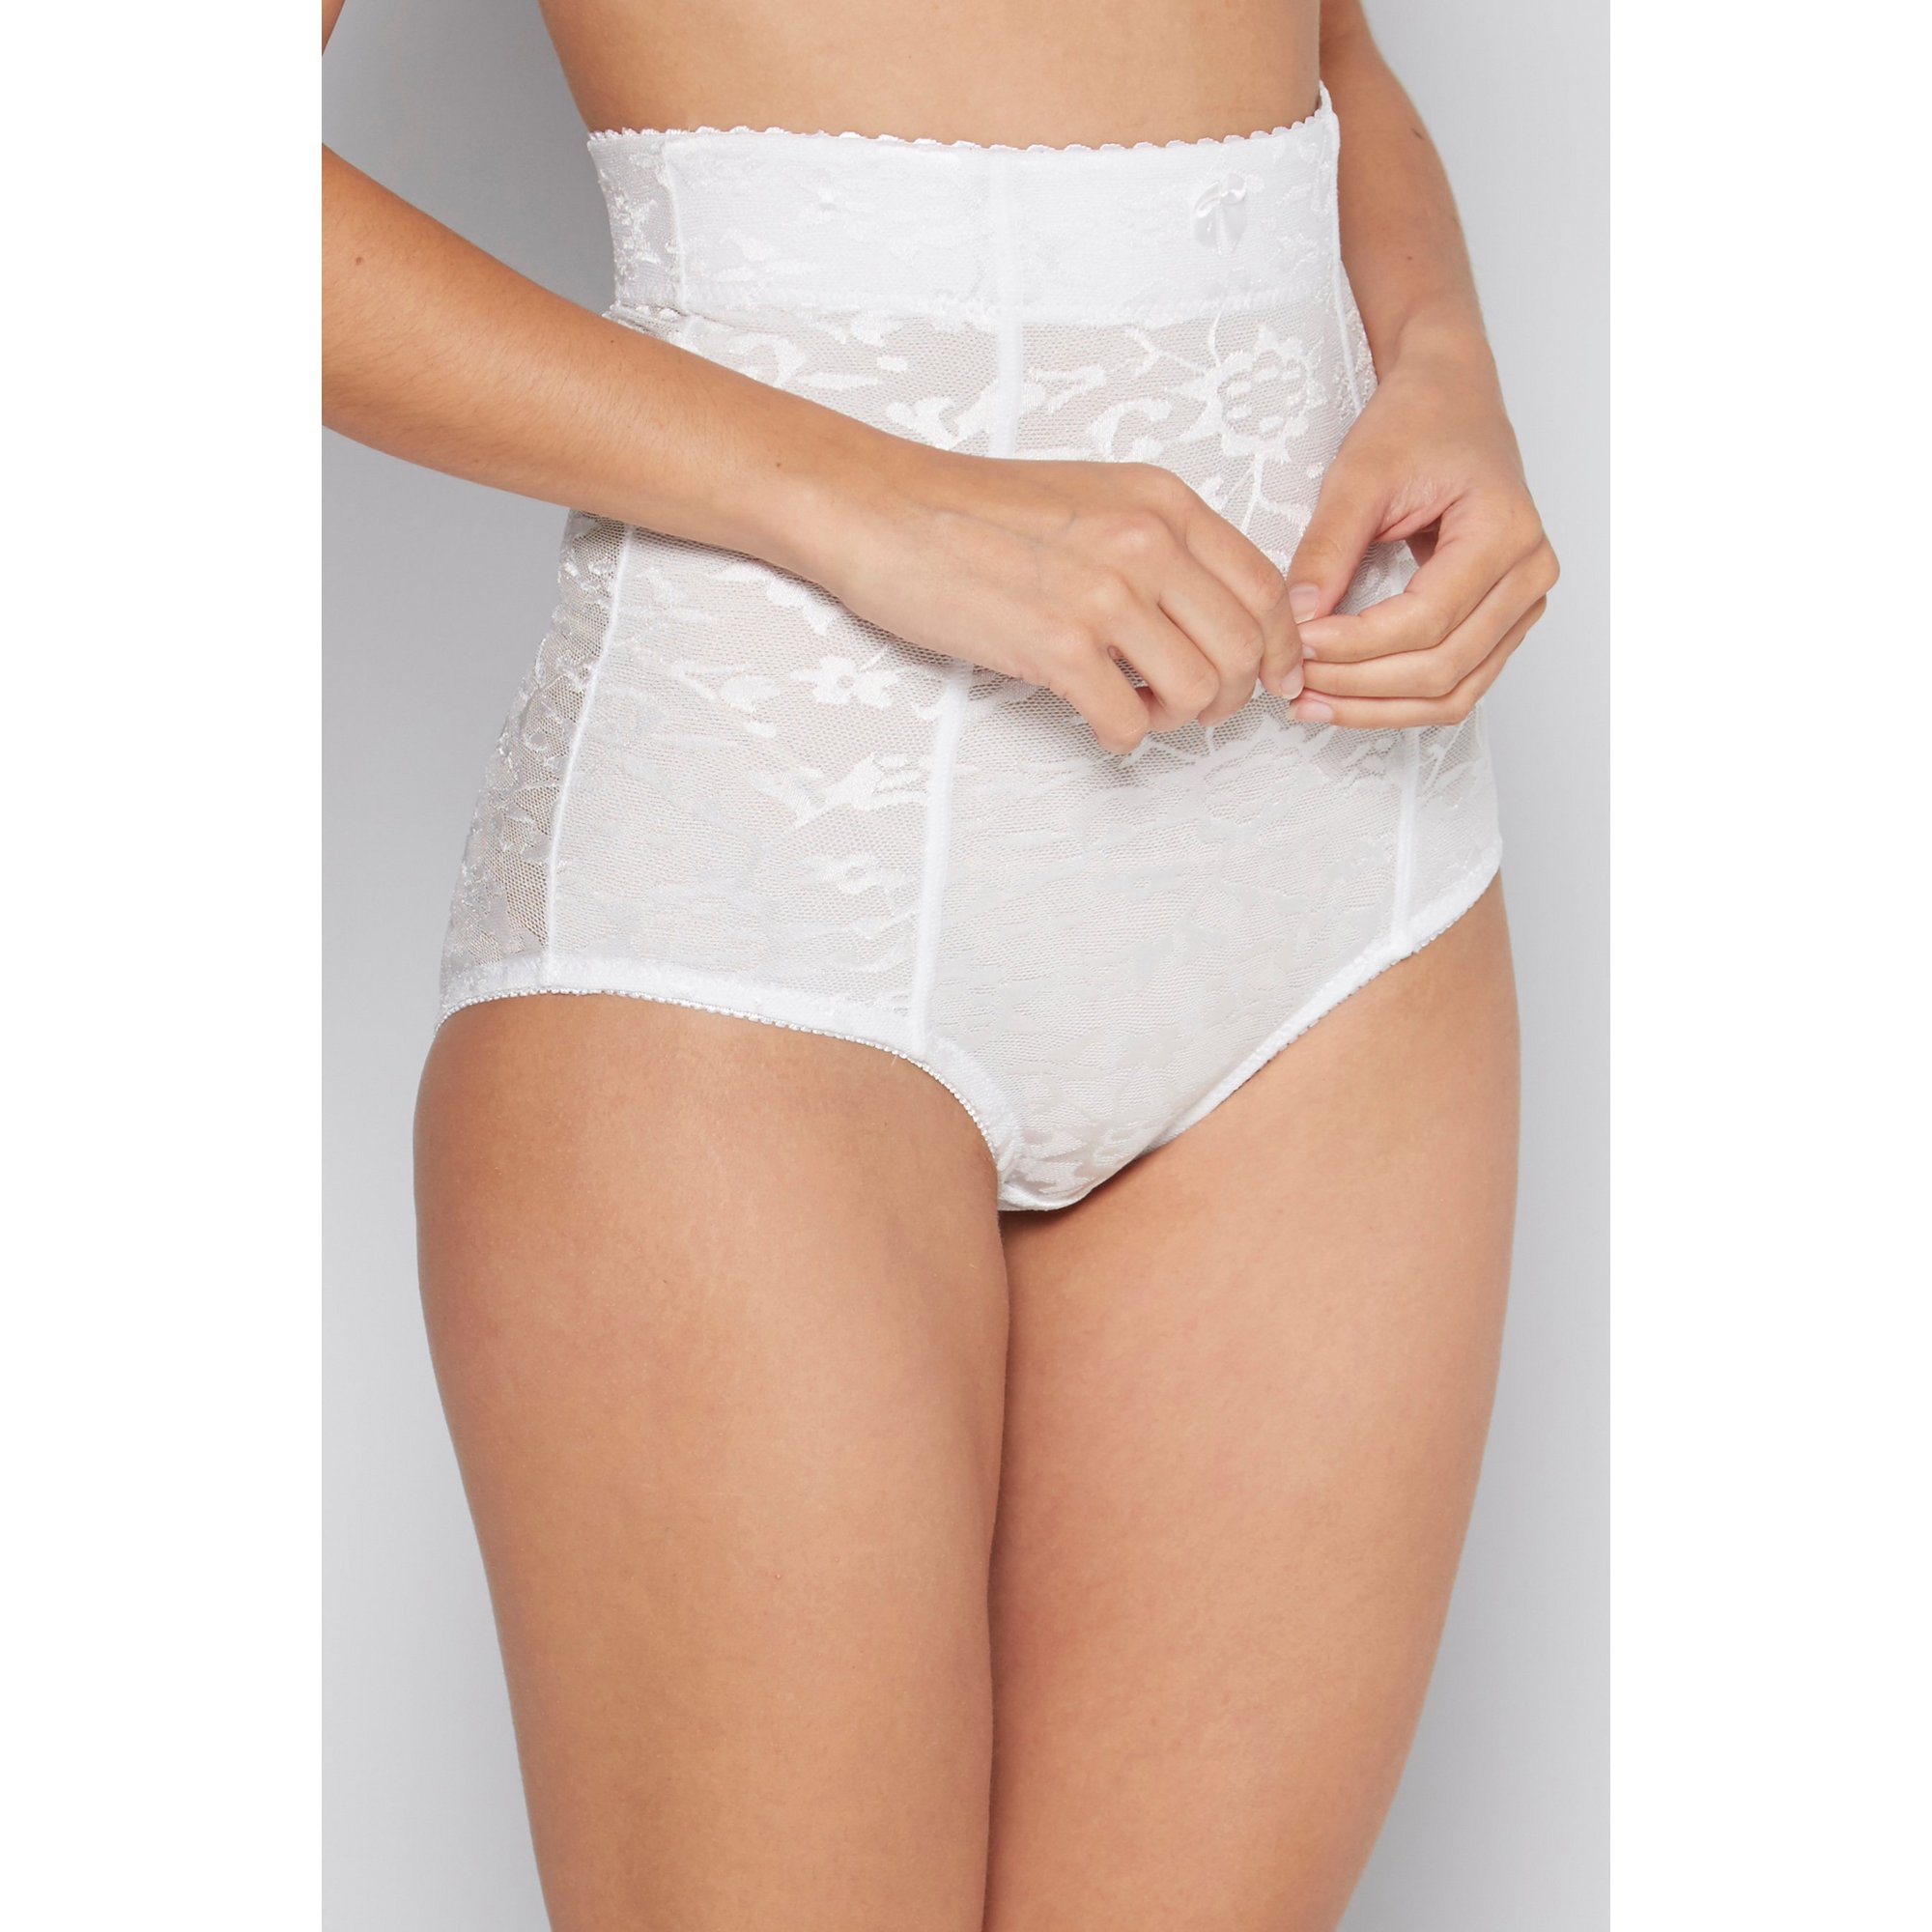 Image of High Waist Brief with Tummy Control